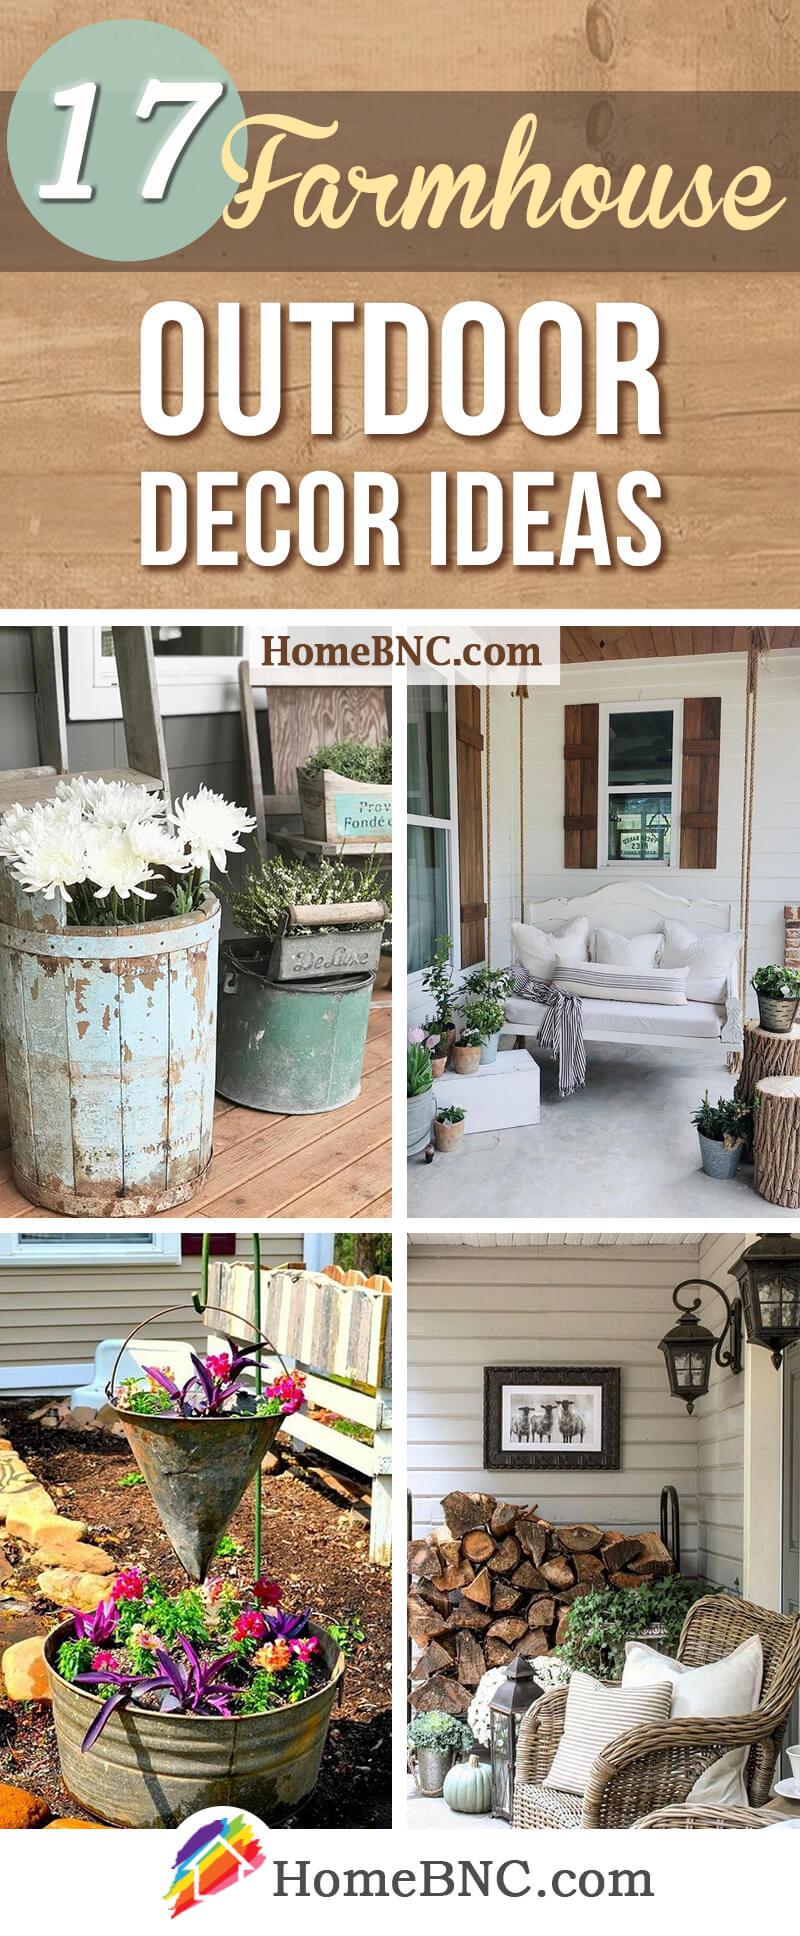 Farmhouse Outdoor Decor Ideas